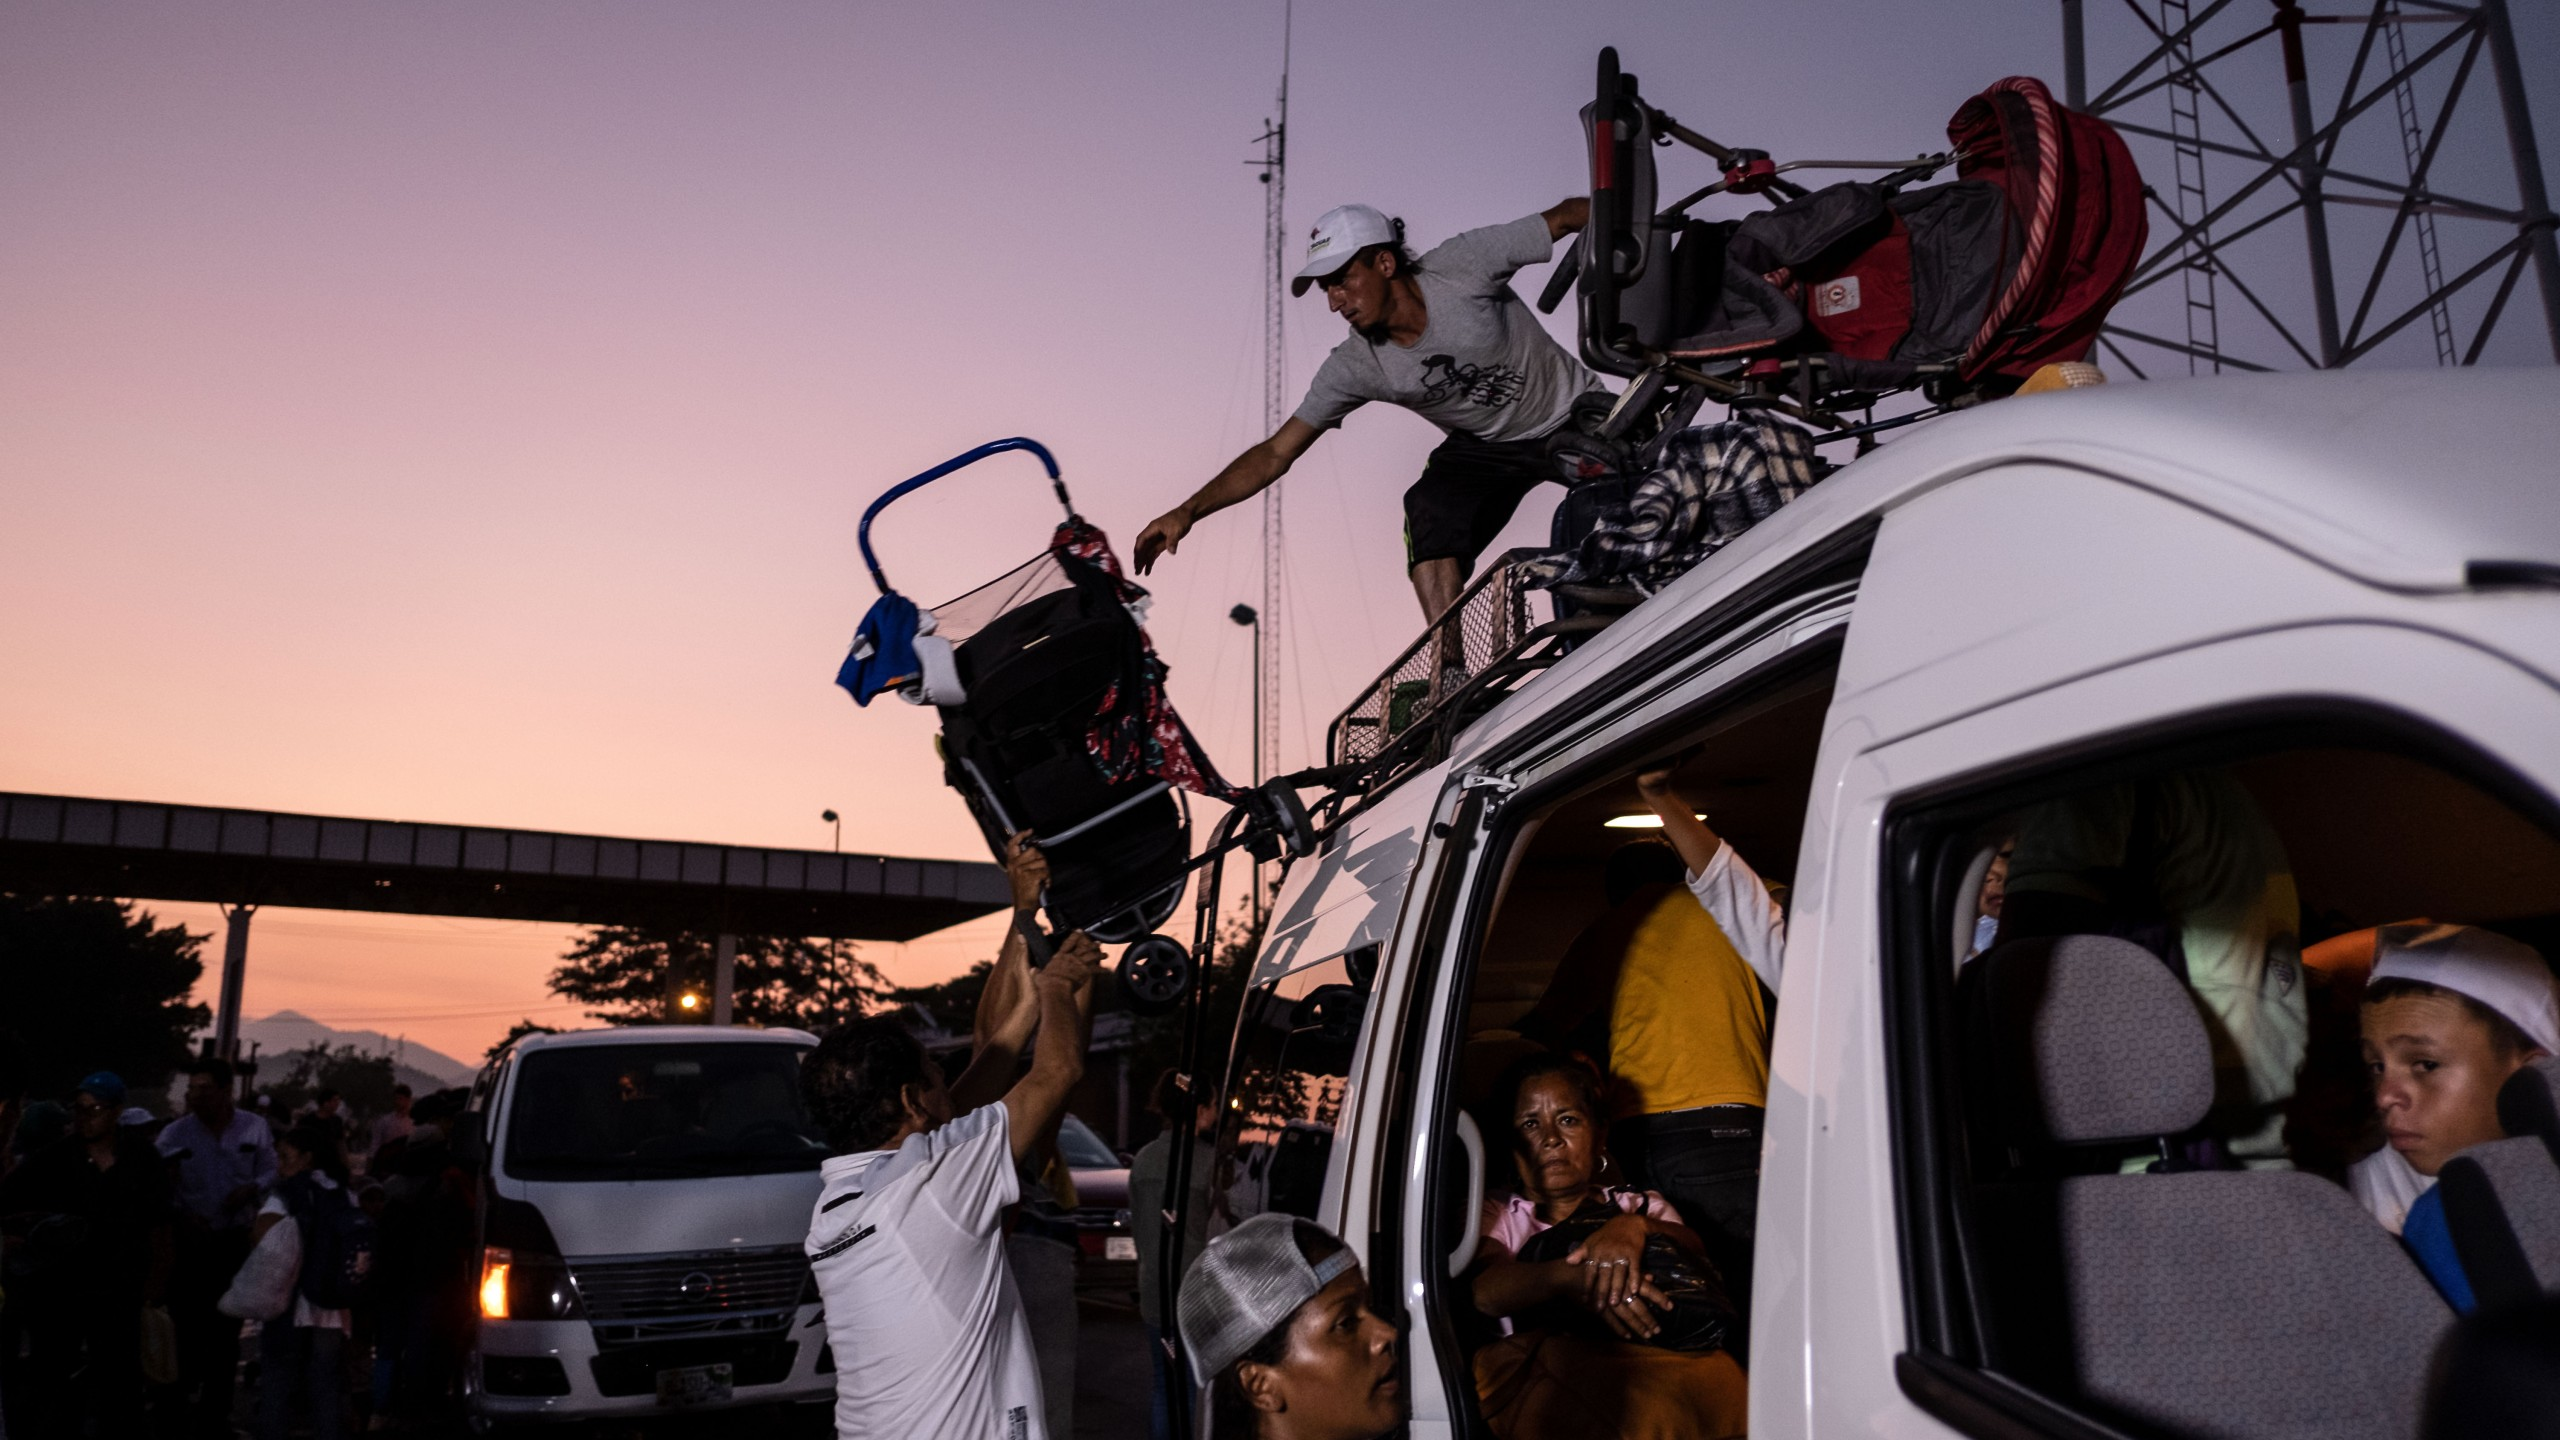 Honduran migrants heading in a caravan to the US, upload their baby strollers on a van, near Pijijiapan, southern Mexico on October 26, 2018. (Credit: Guillermo Arias/AFP/Getty Images)